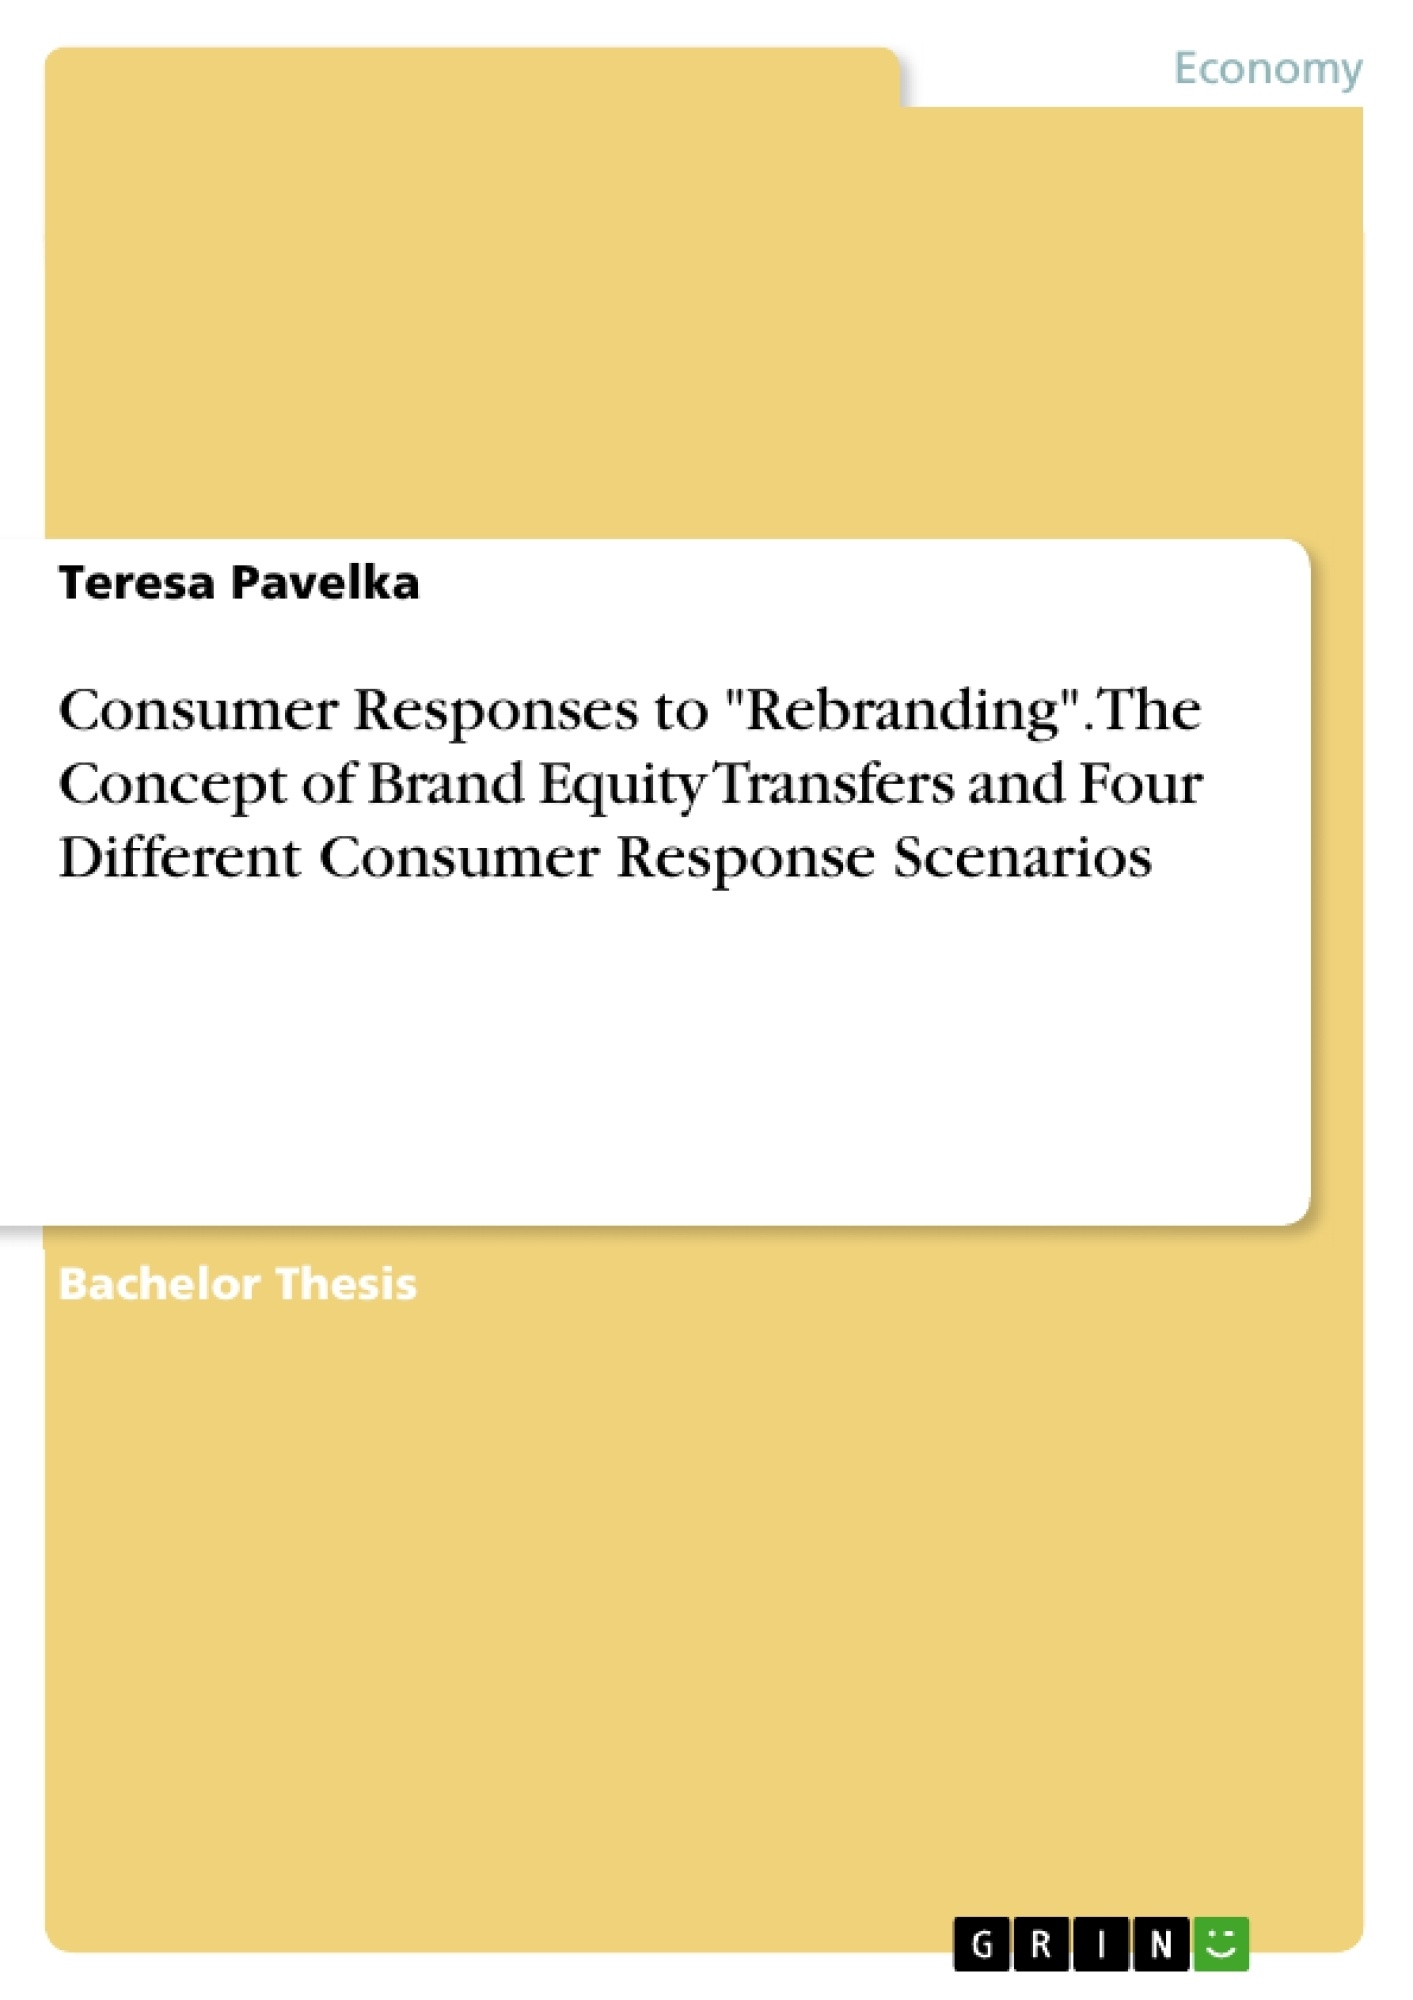 thesis brand